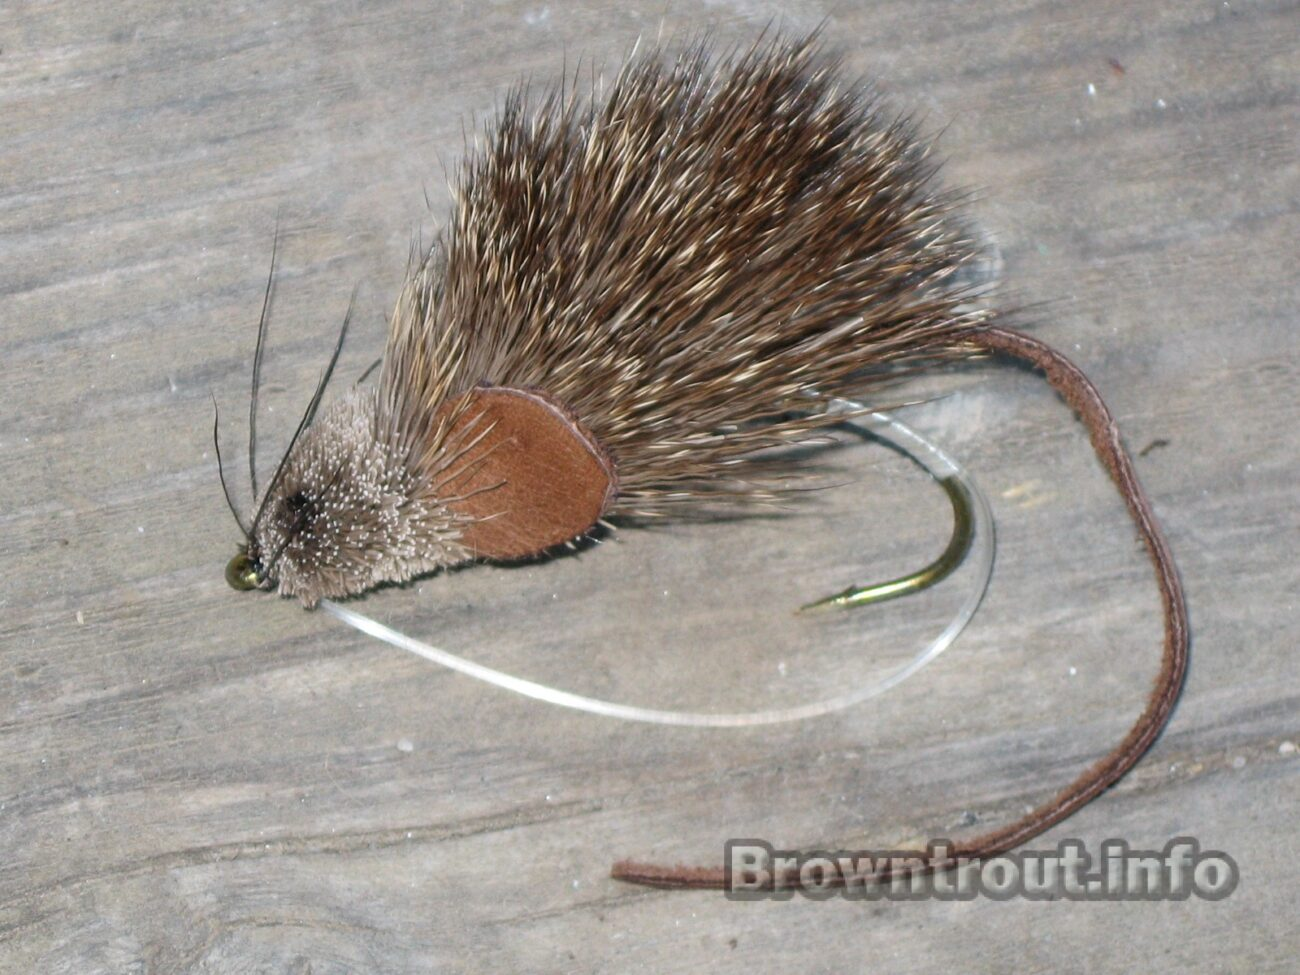 Mouse rat fly for night fishing trout, The best Mouse fly patterns for fly fishing trout at night, streamer fly patterns, streamer flies for trout, mice tails for trout, trout streamer patterns